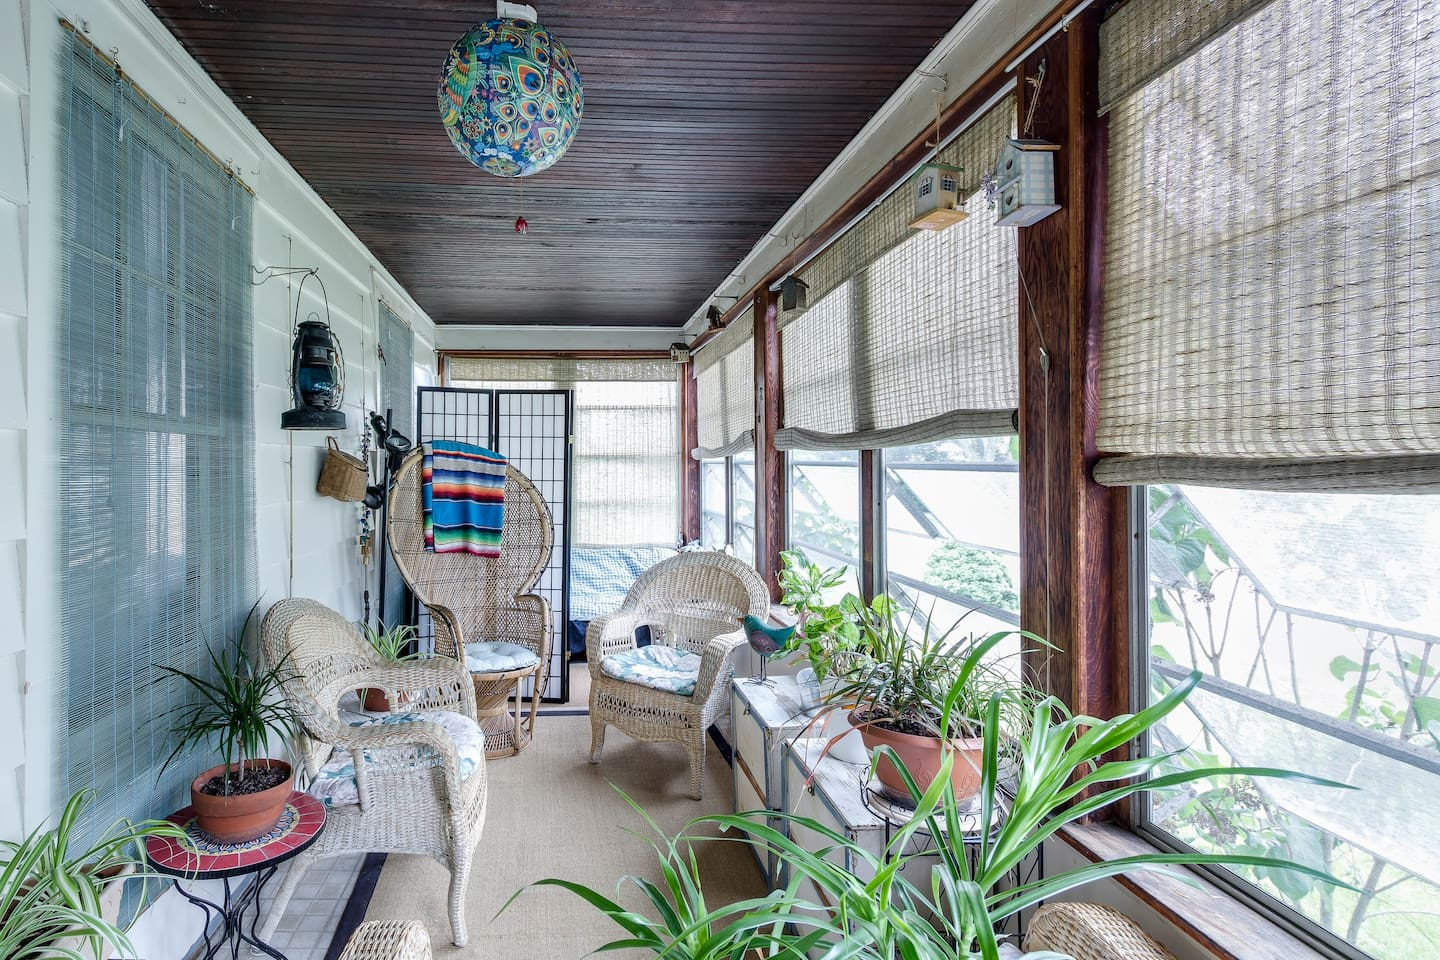 Spacious east facing sunporch for relaxing or having morning breakfast